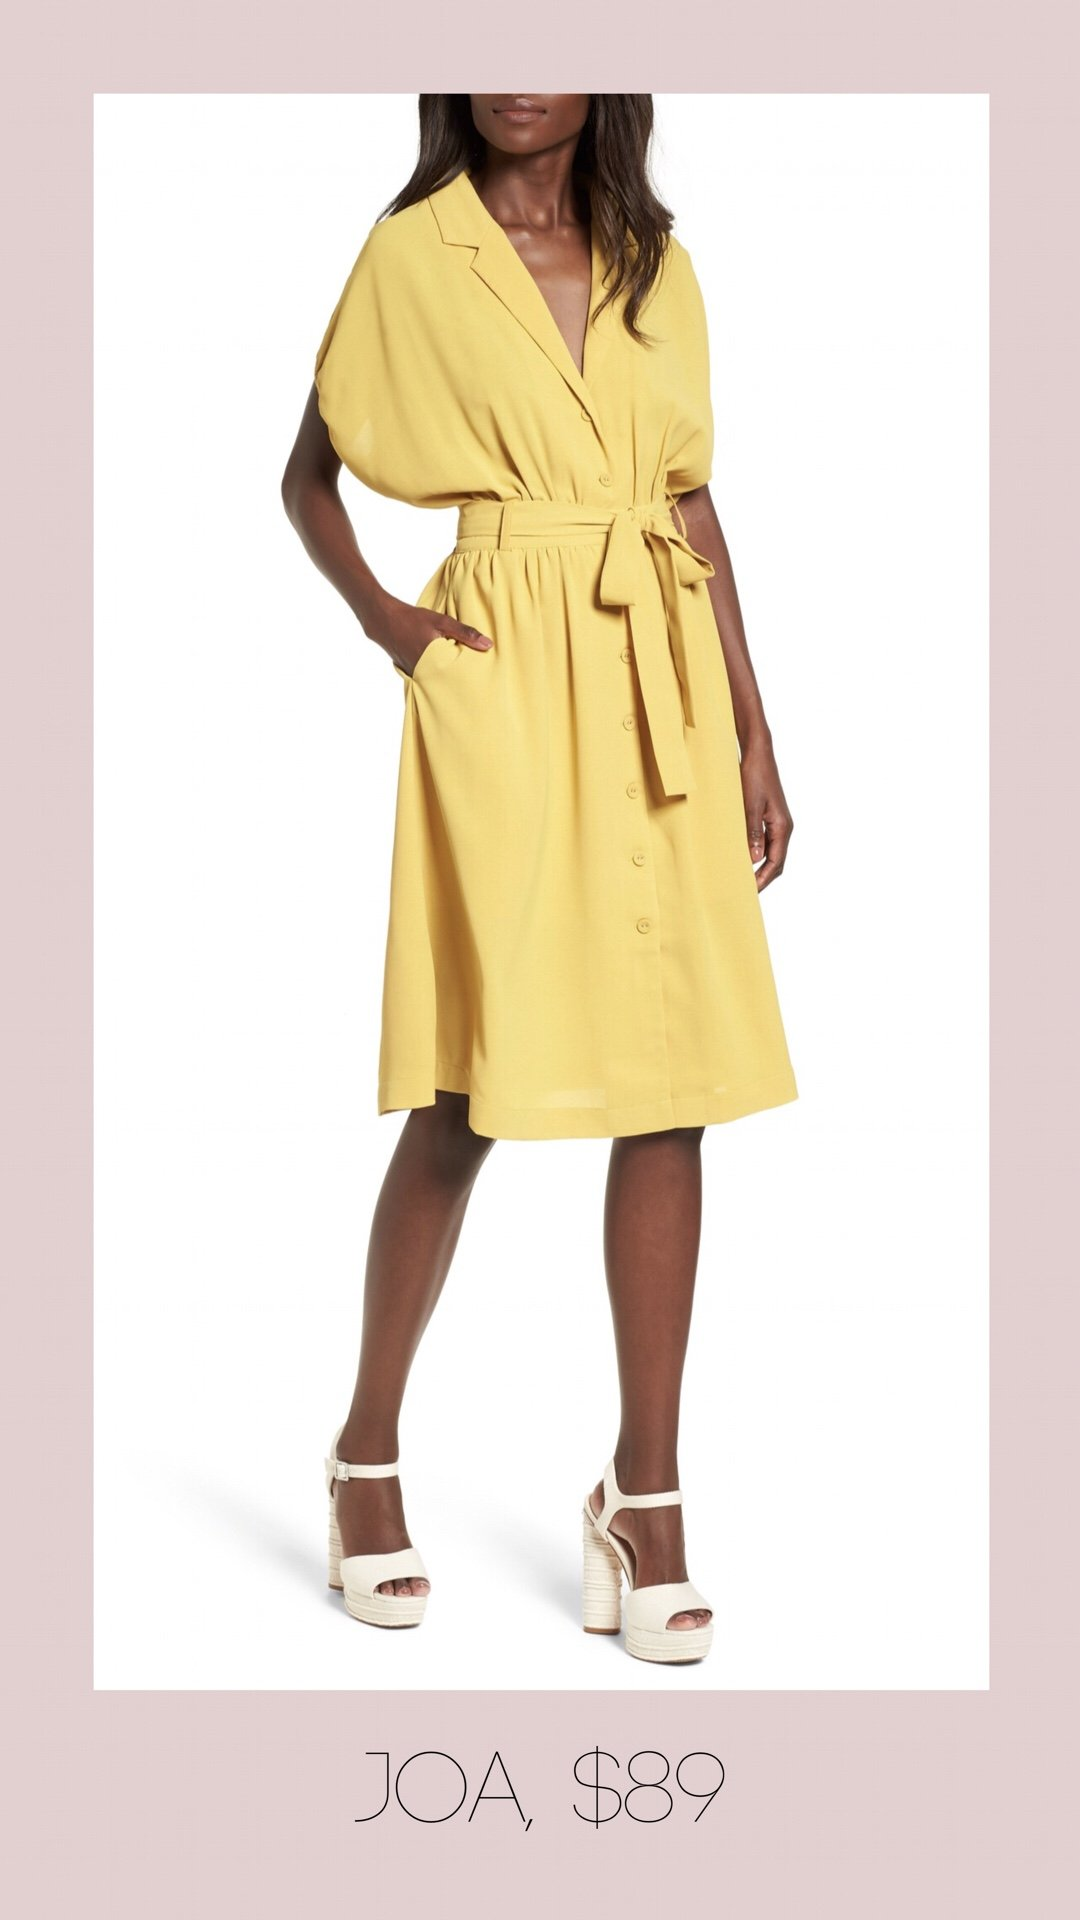 JOA button front yellow dress